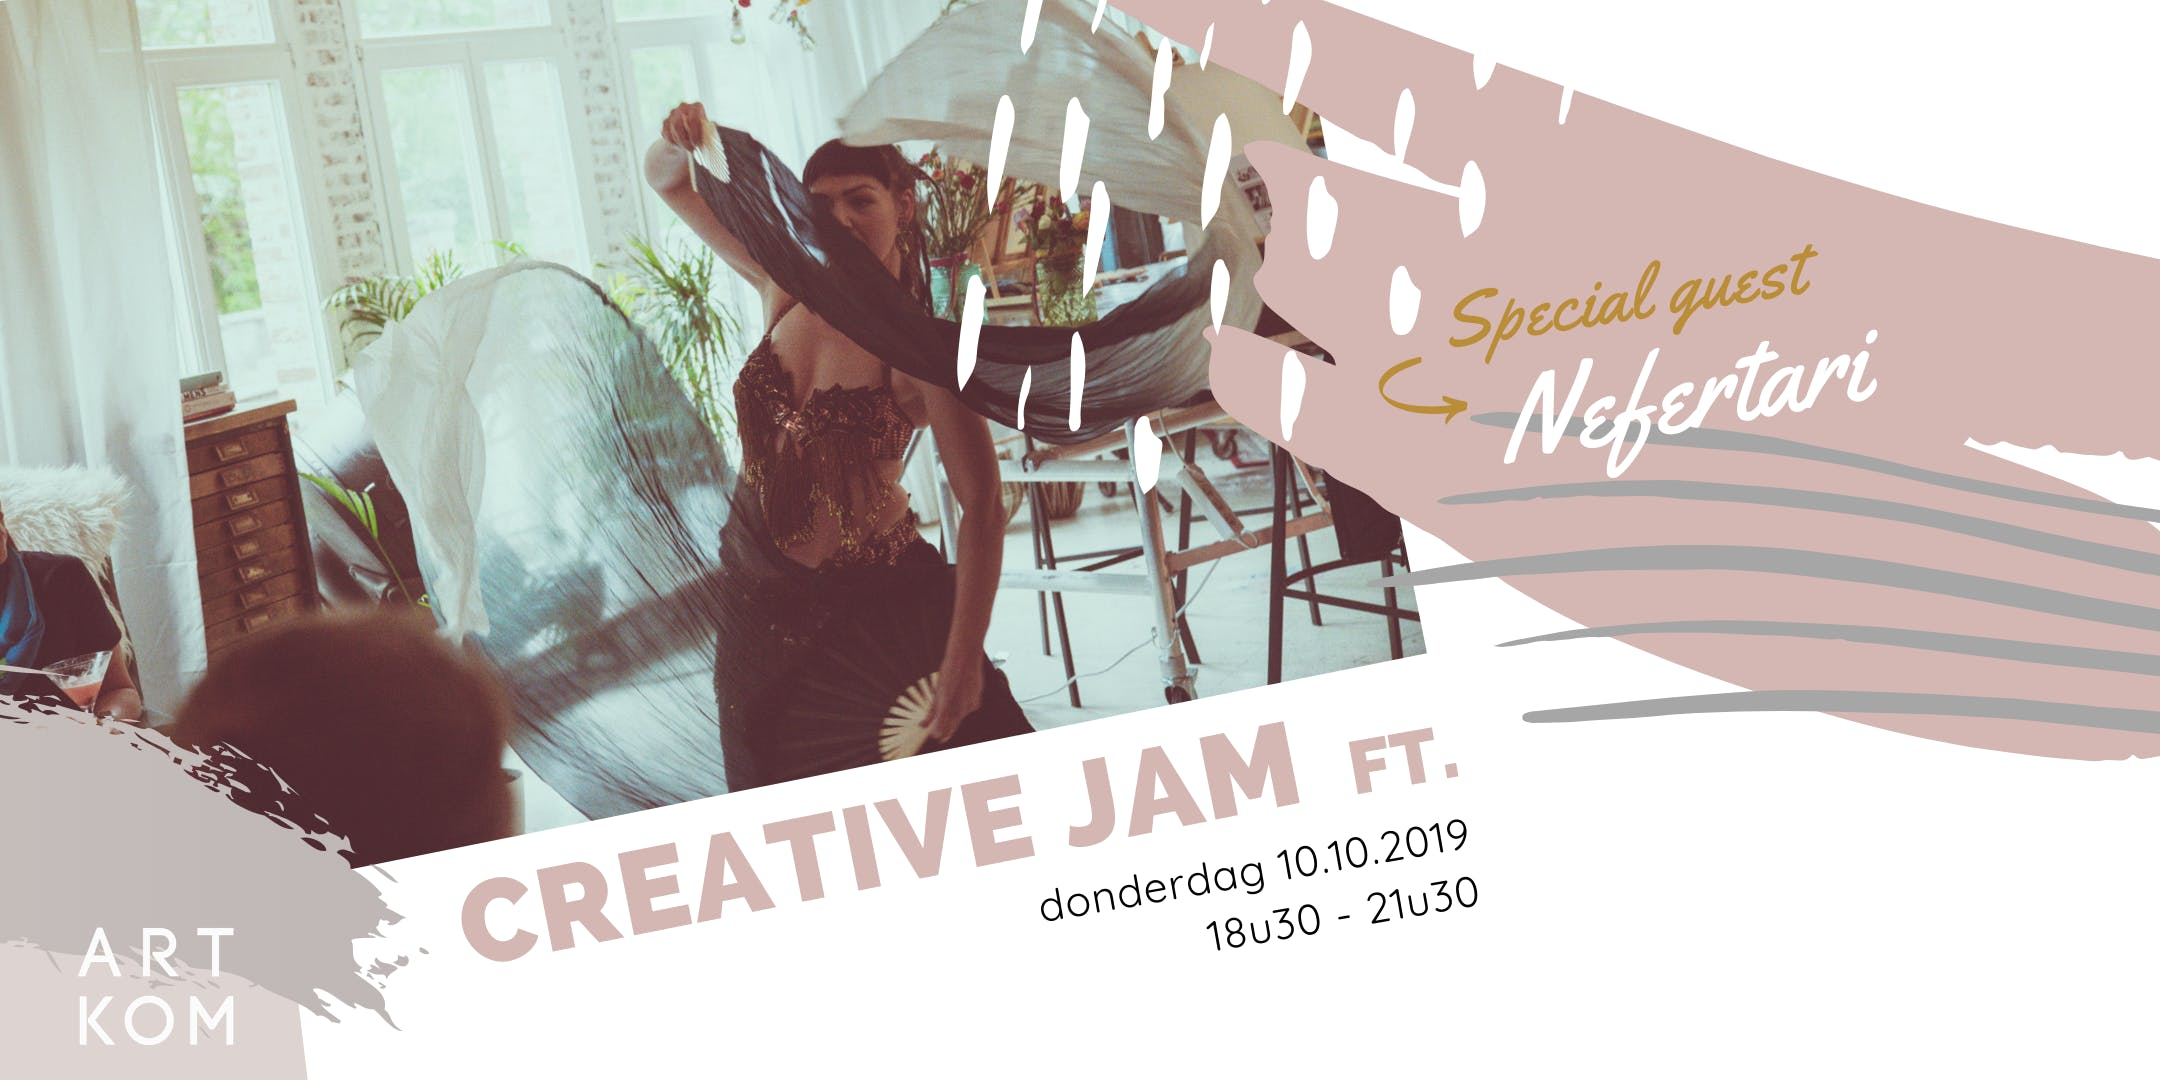 Creative JAM ft. Nefertari